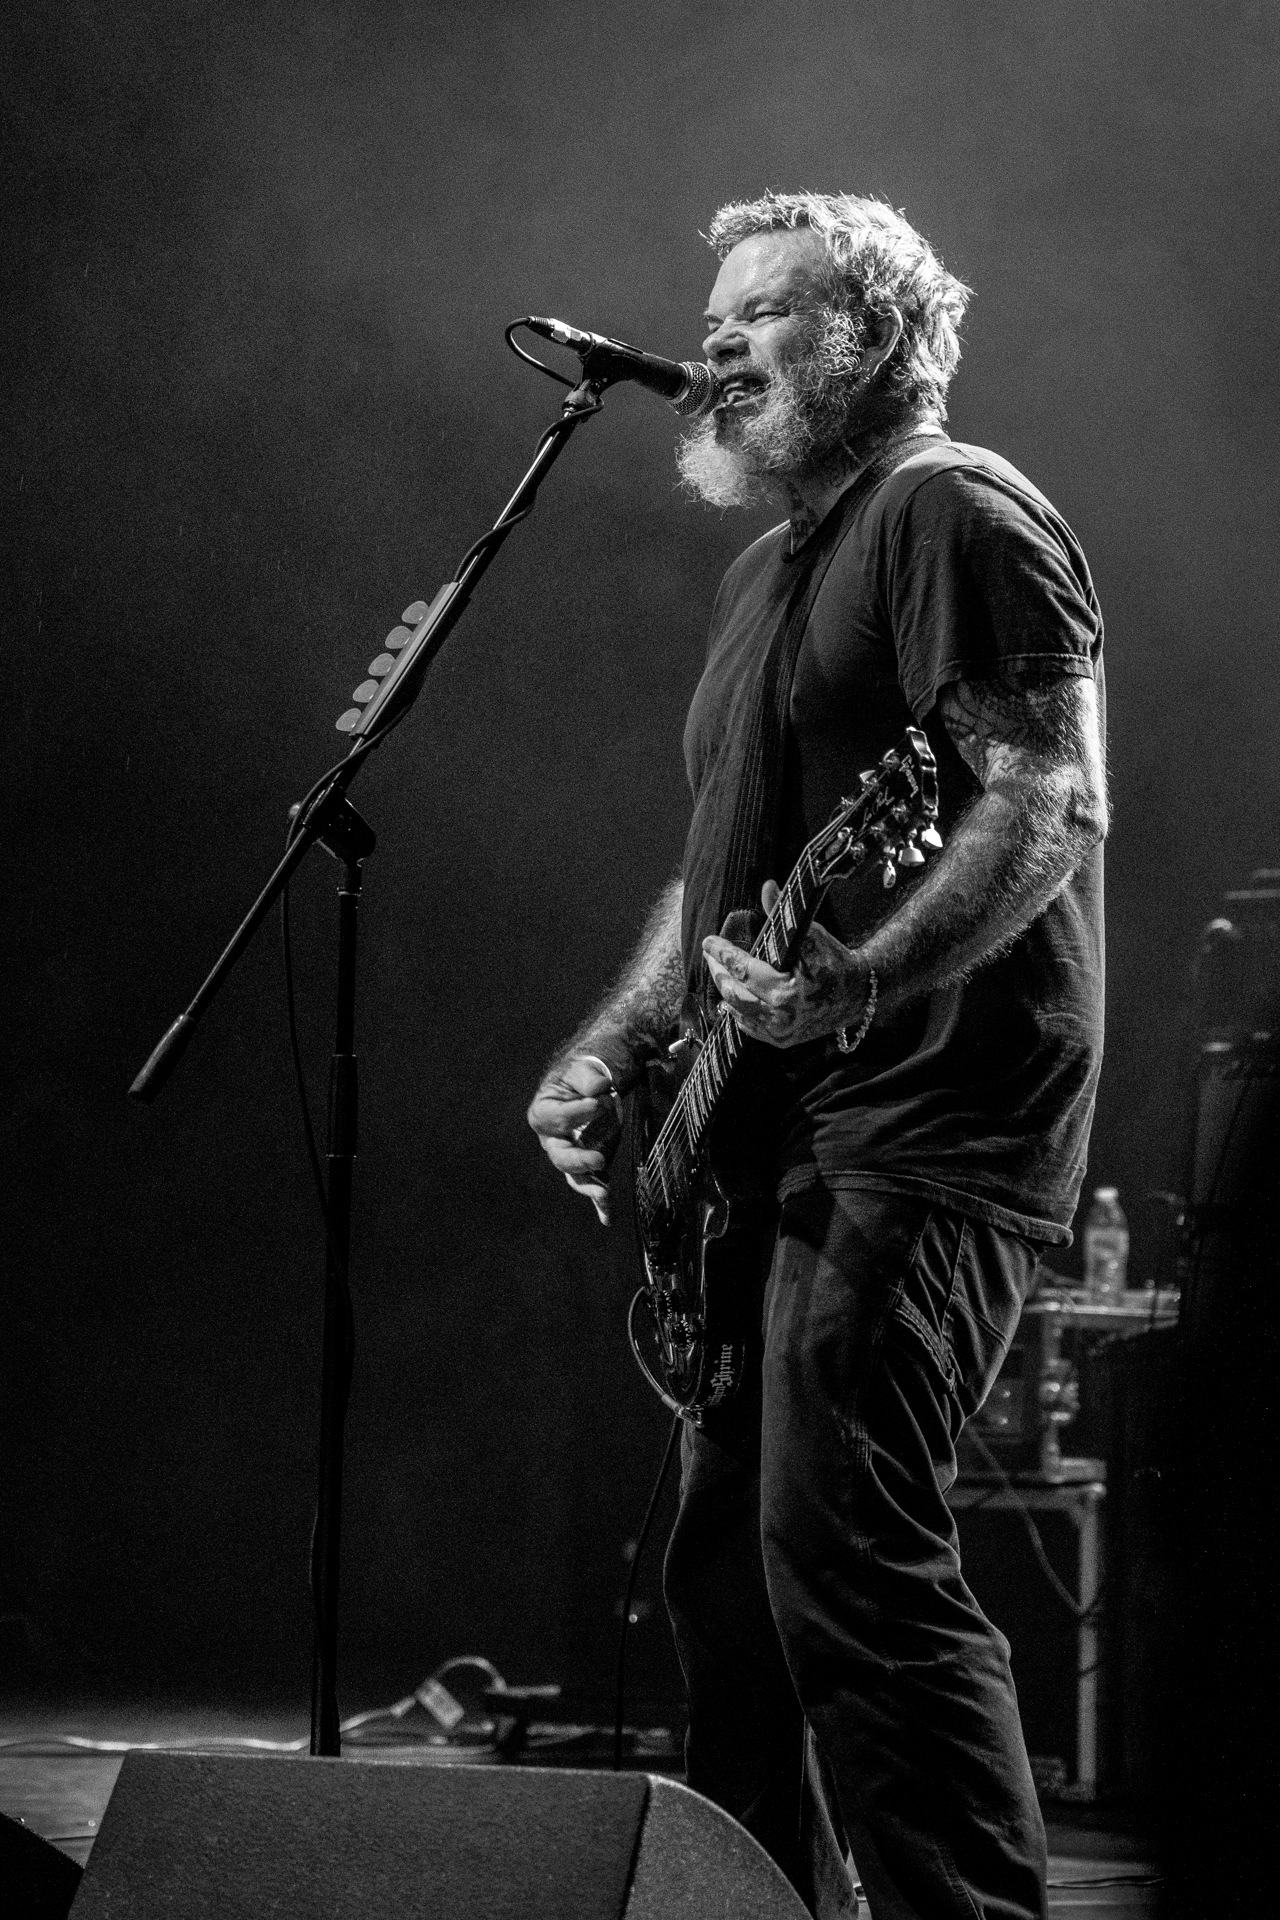 Neurosis plays in San Diego on July 14, 2018